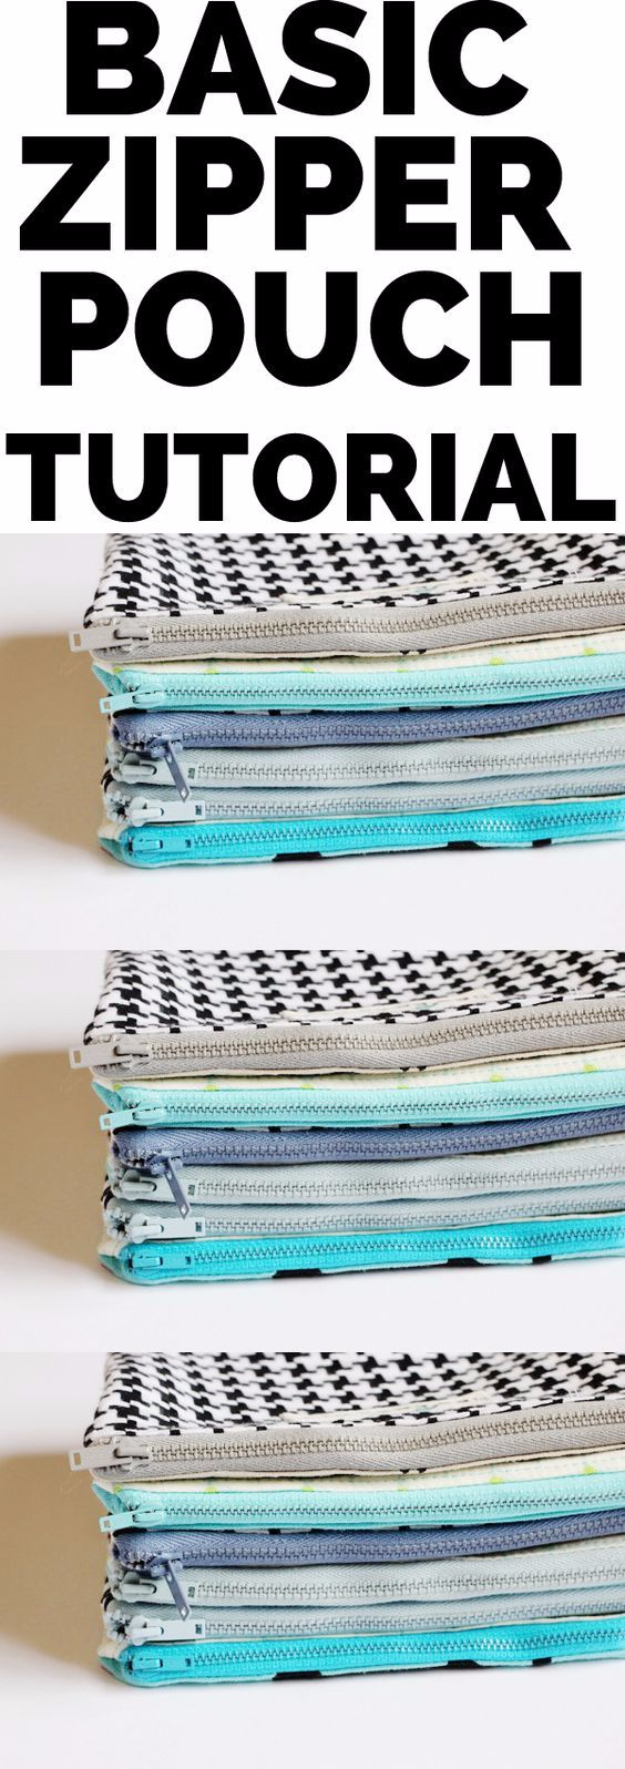 Creative DIY Projects With Zippers - Basic Zipper Pouch - Easy Crafts and Fashion Ideas With A Zipper - Jewelry, Home Decor, School Supplies and DIY Gift Ideas - Quick DIYs for Fun Weekend Projects